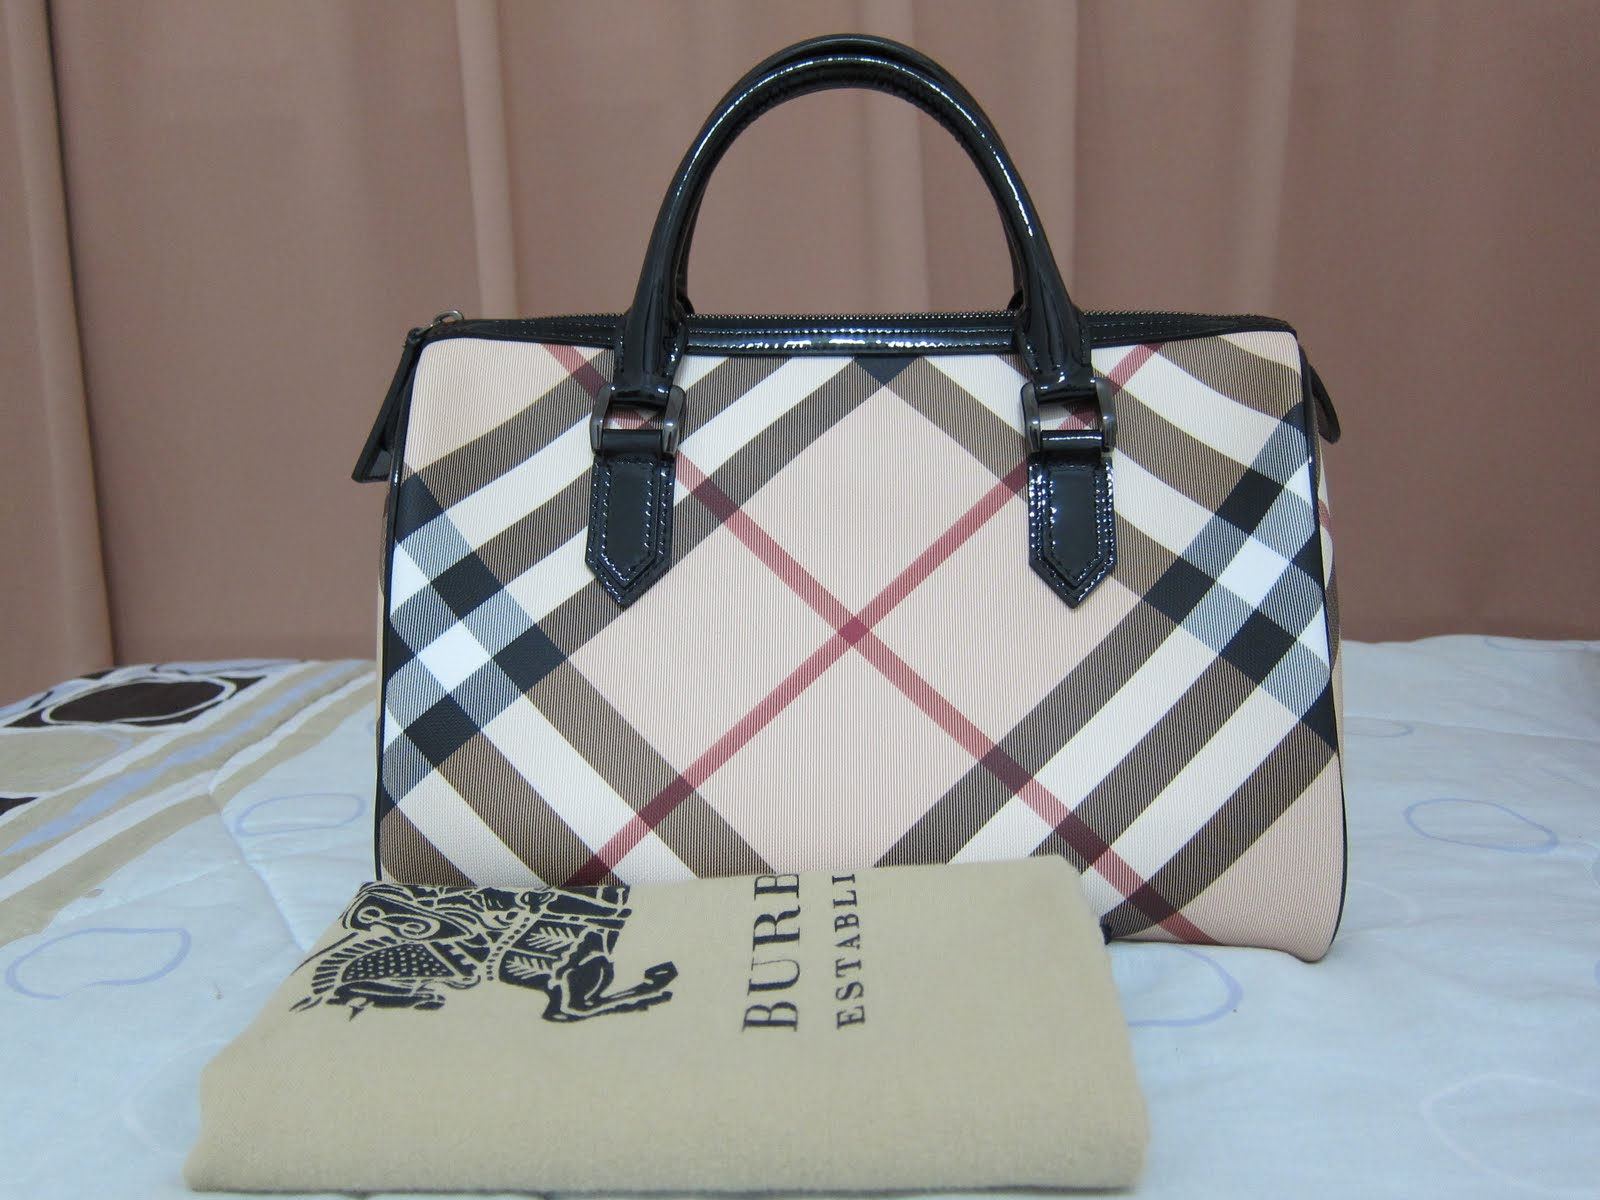 ea04f72062e0 Elegant Poise - Where Branded Bags are Affordable  Burberry 3